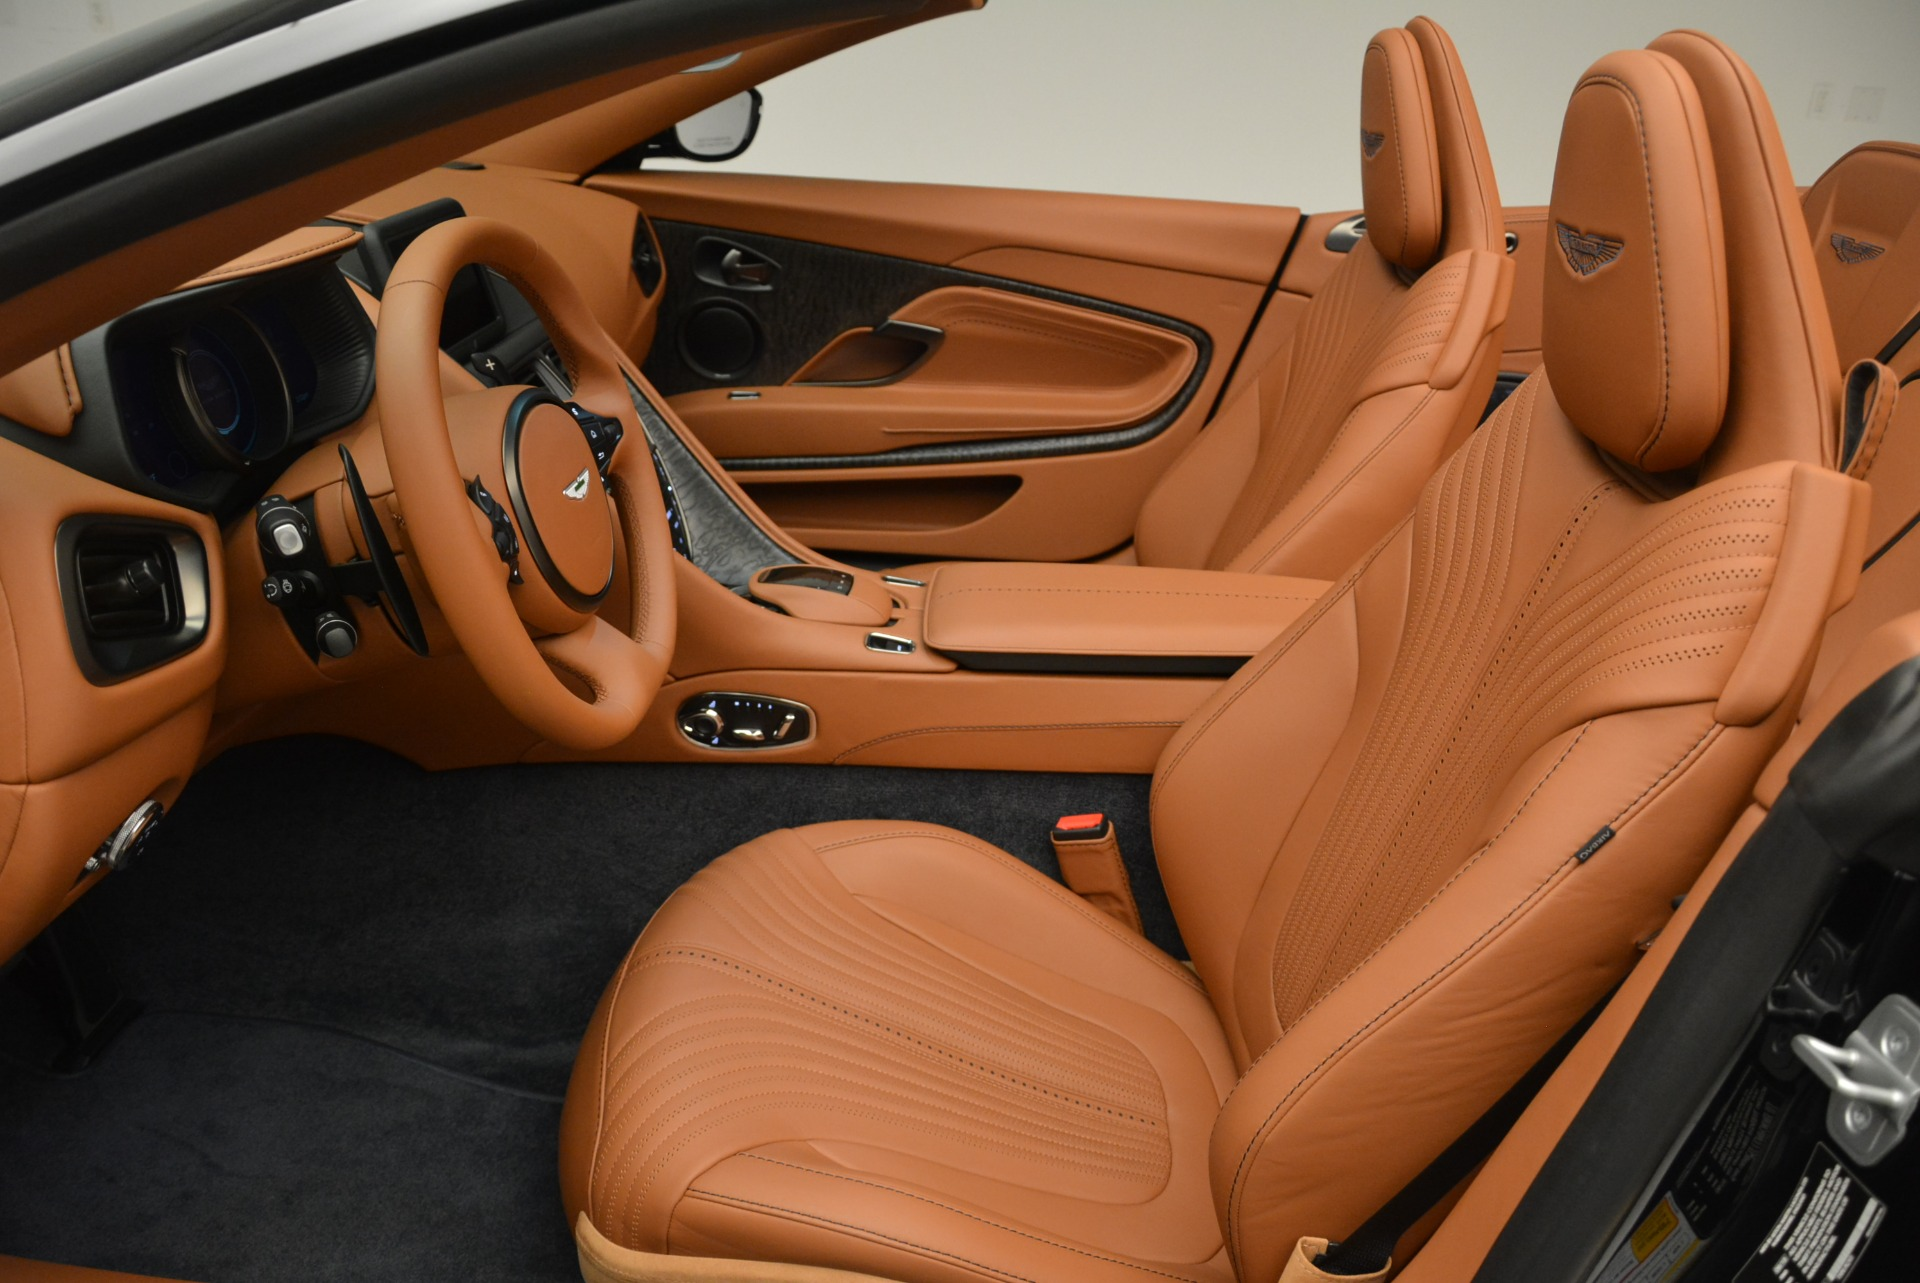 New 2019 Aston Martin DB11 Volante Volante For Sale In Westport, CT 2450_p20